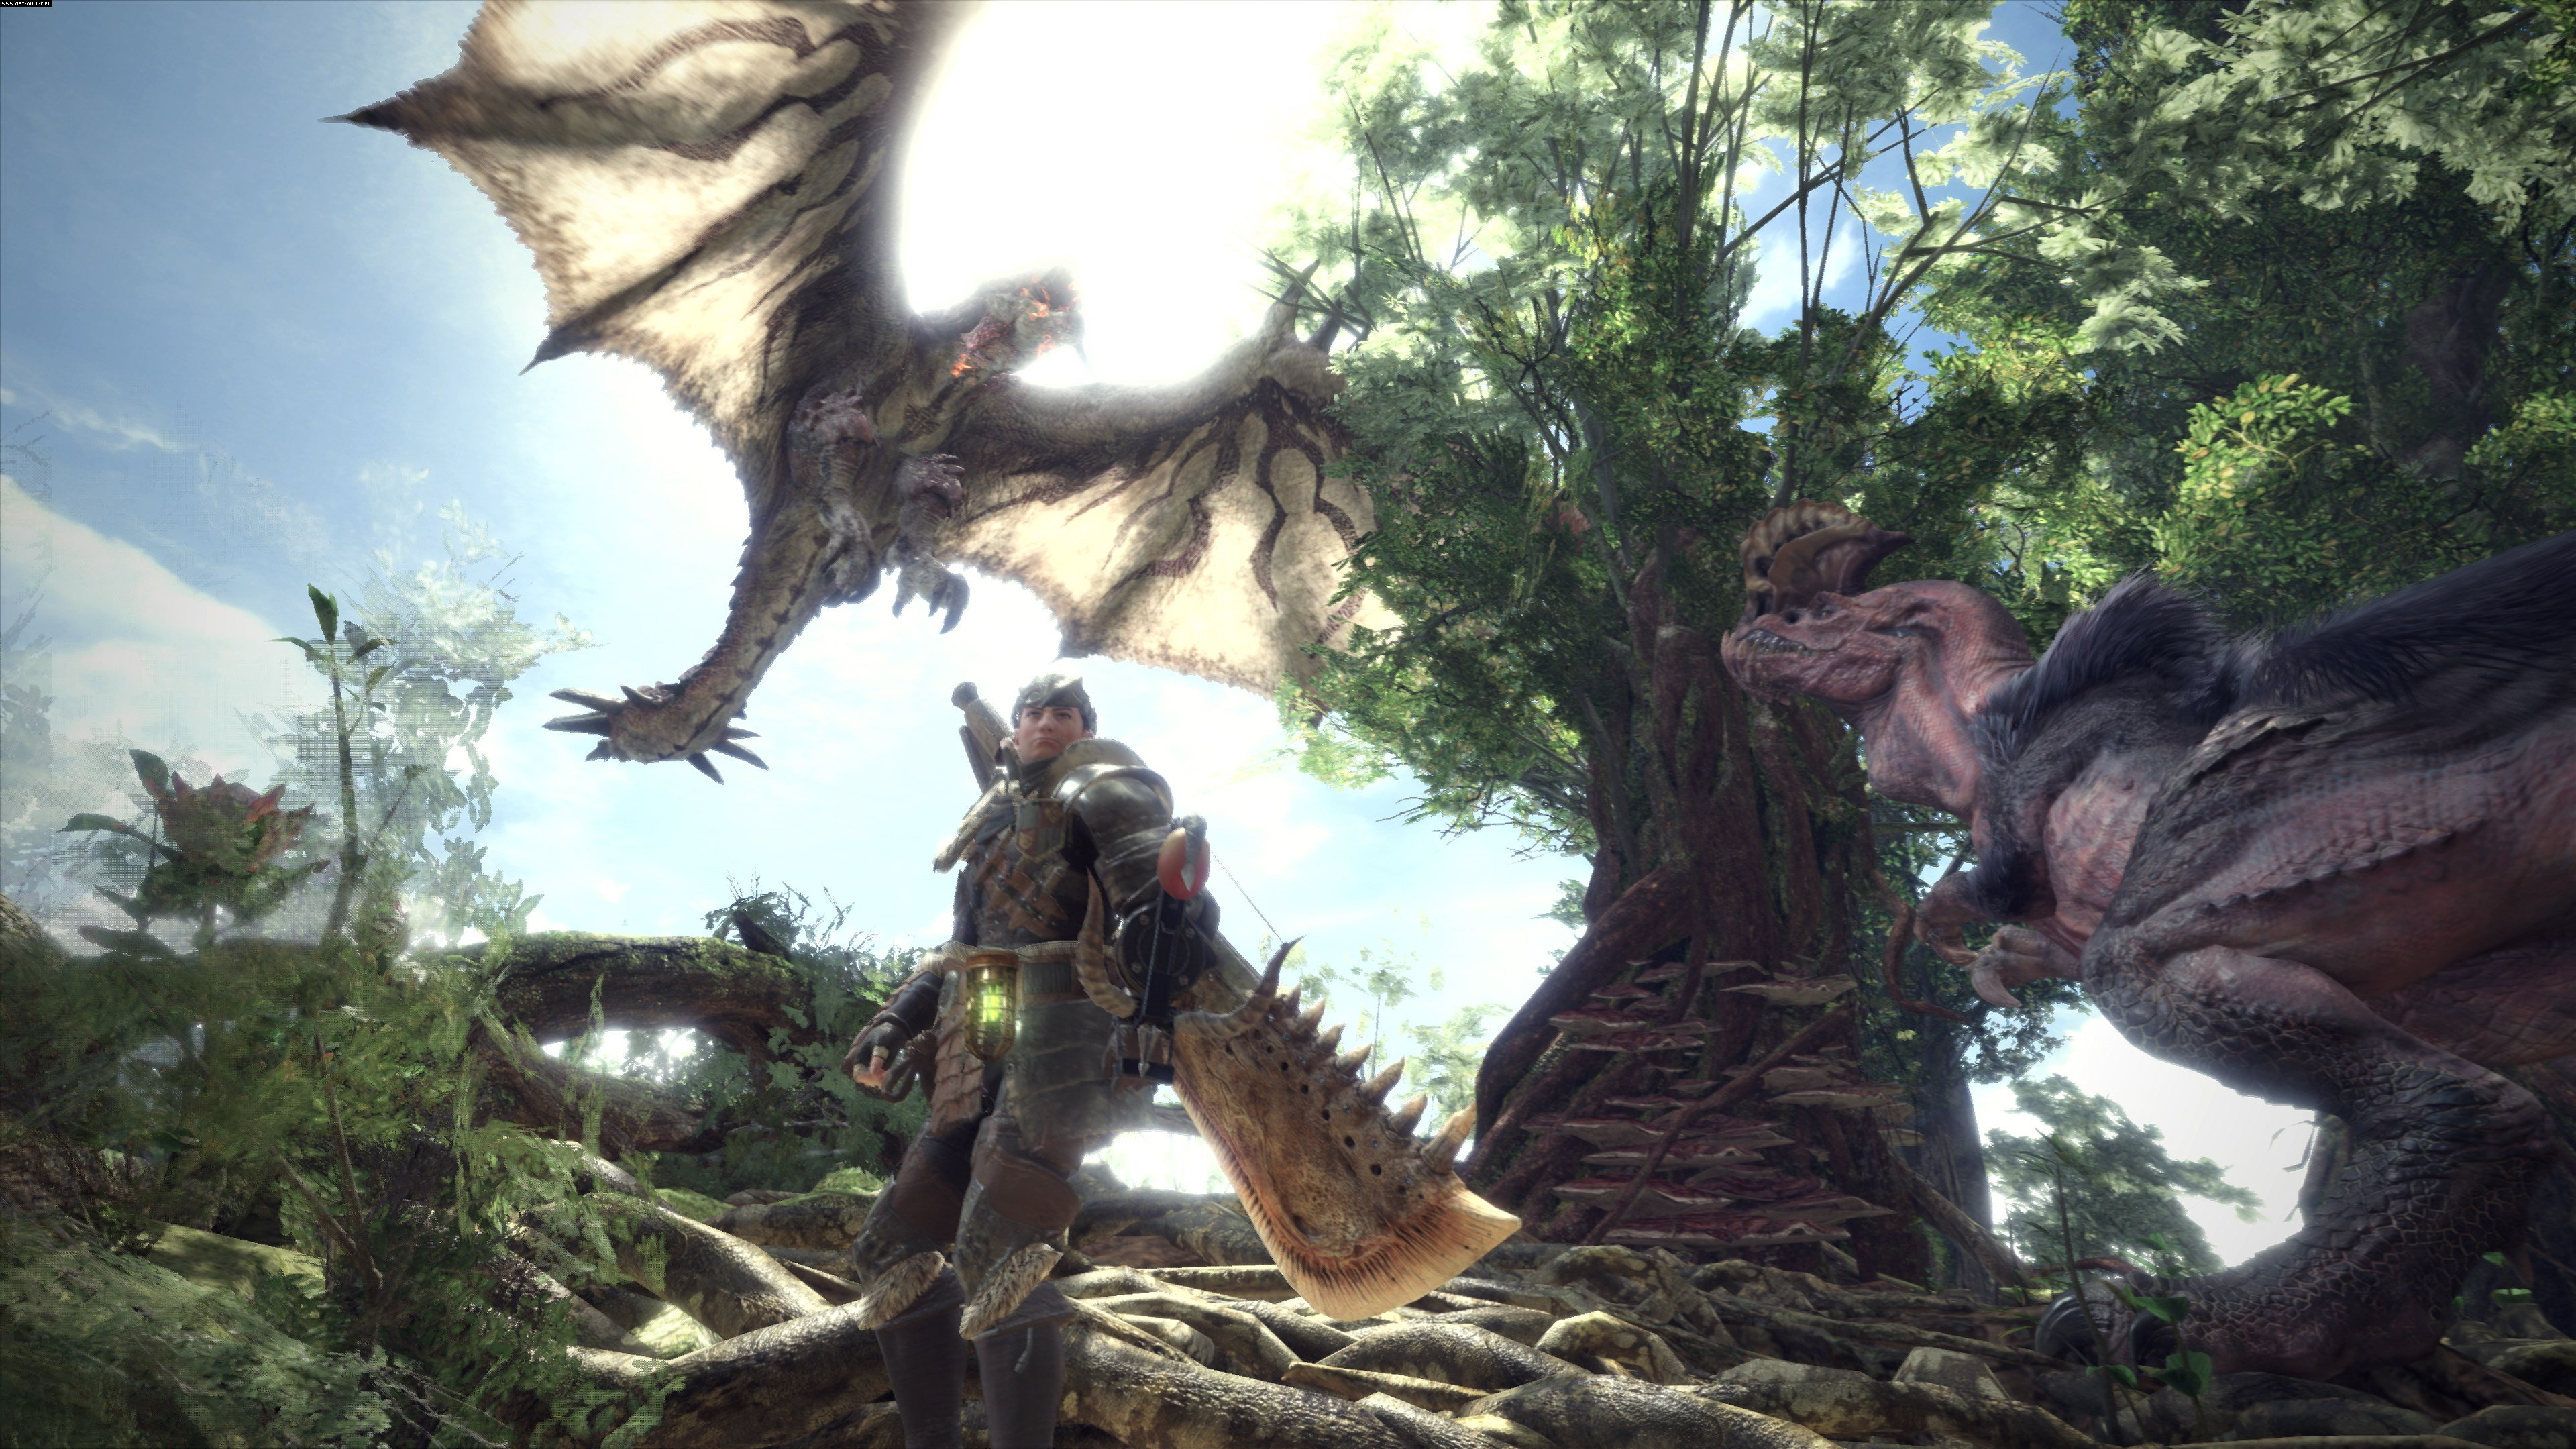 Monster Hunter: World PC, PS4, XONE Games Image 43/48, Capcom